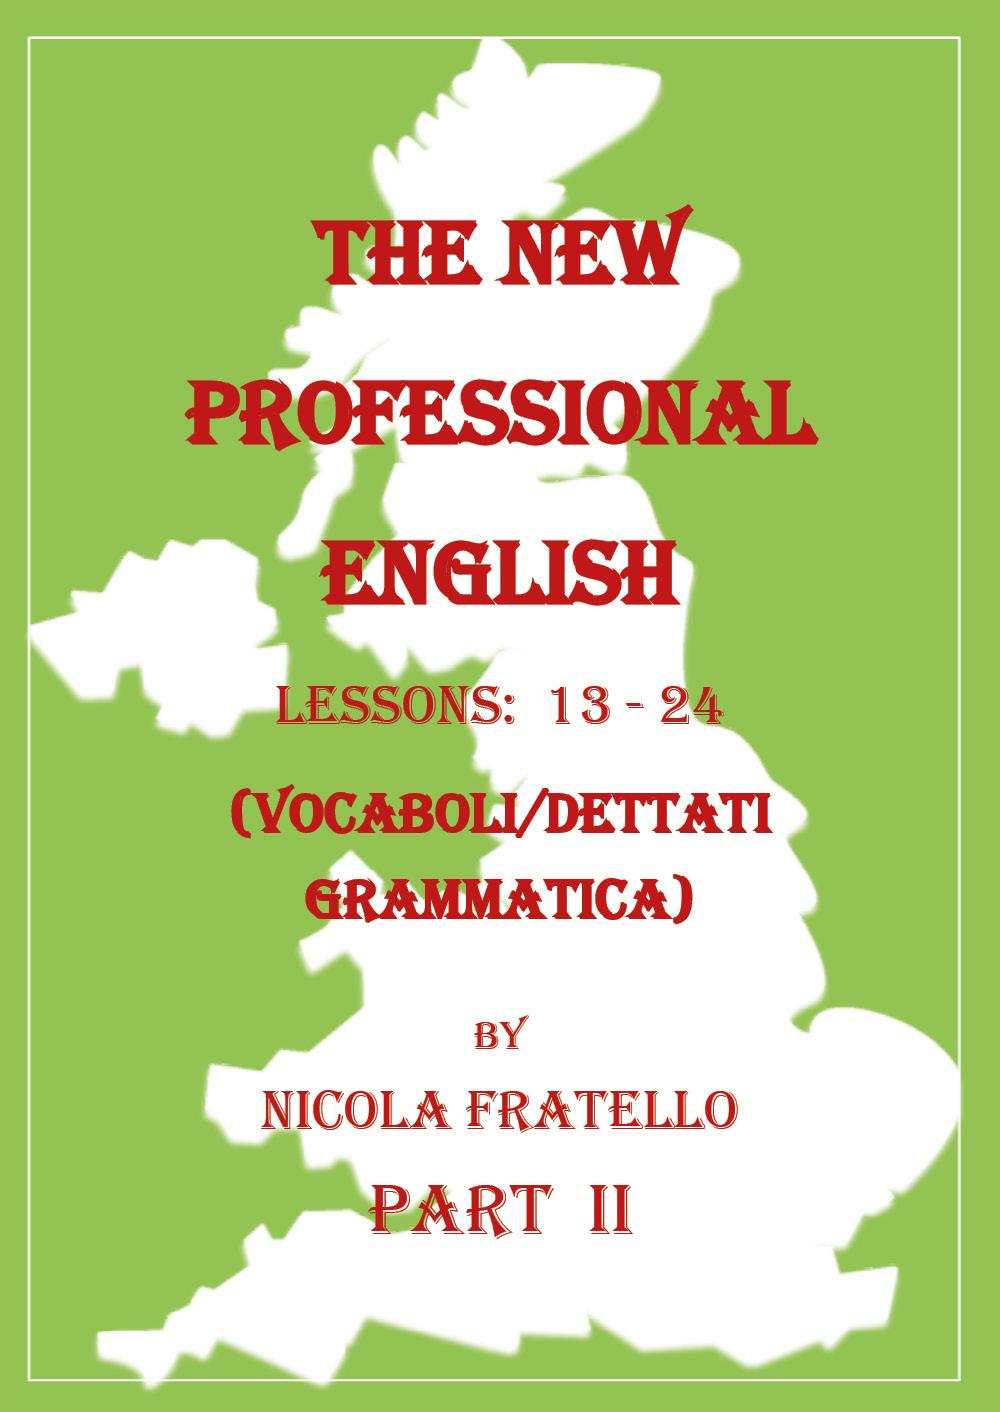 The New Professional English - Part II